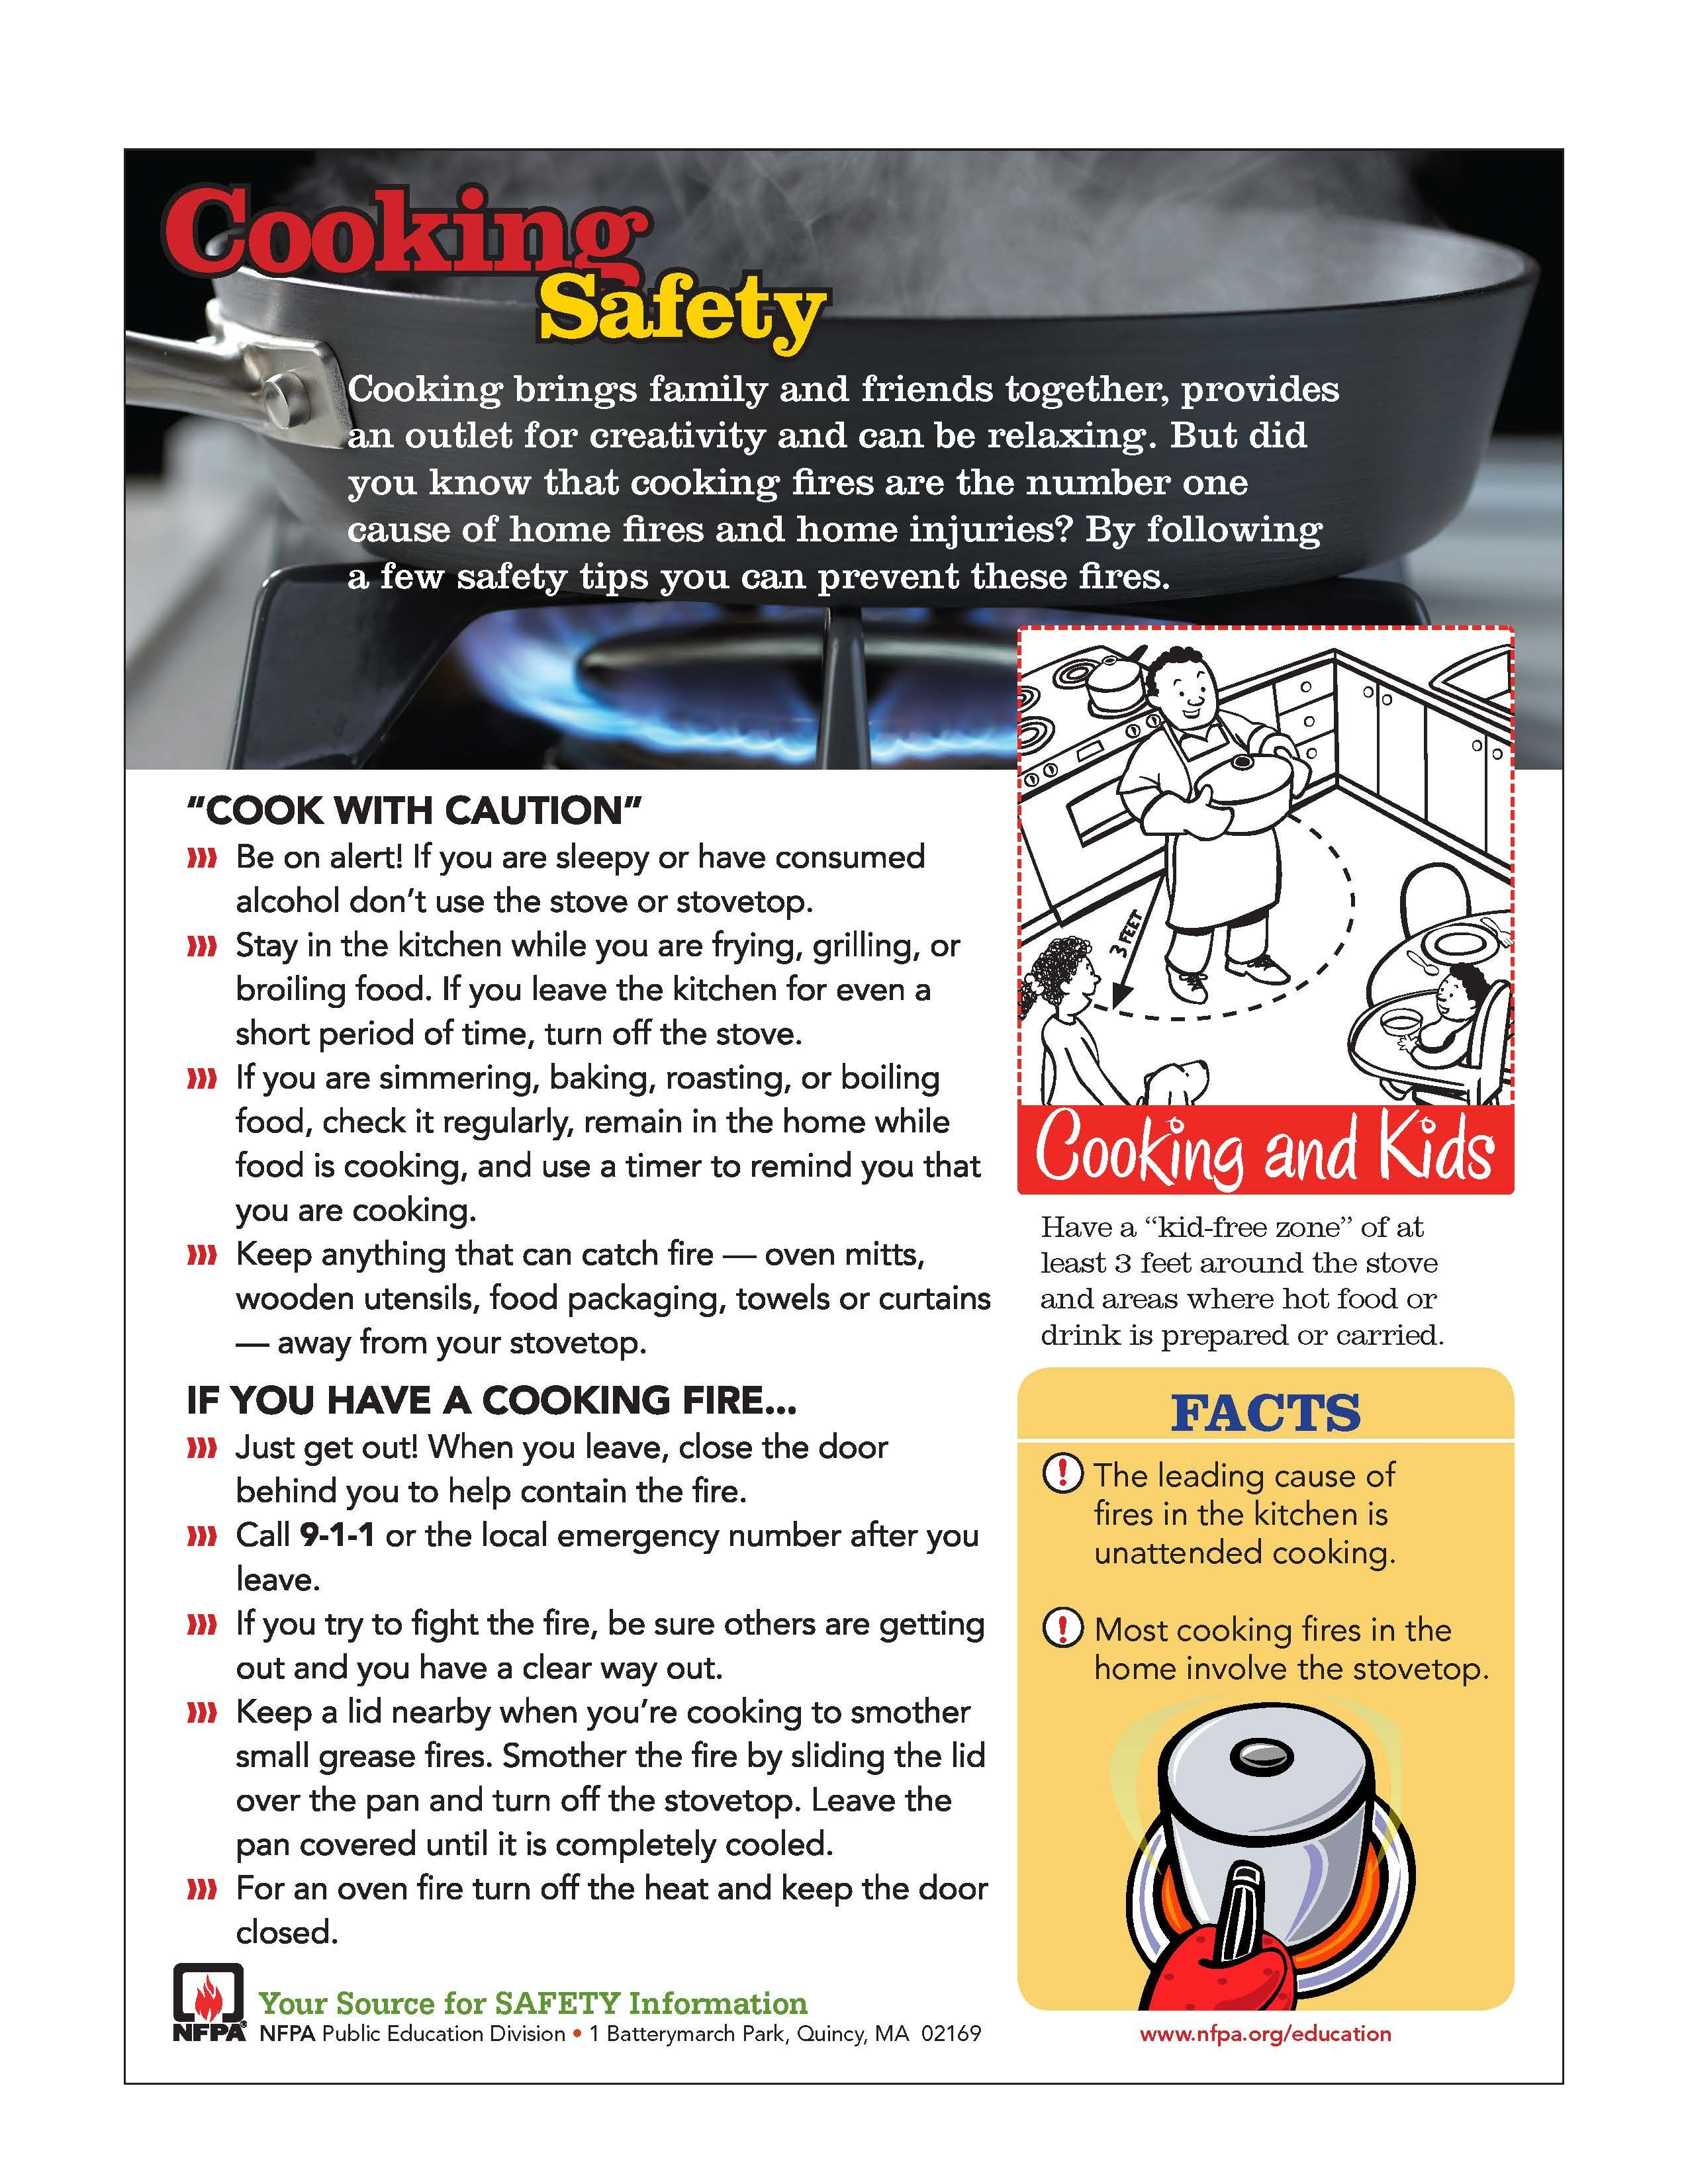 Making dinner for your Valentine? Cooking safety tips, courtesy of ...